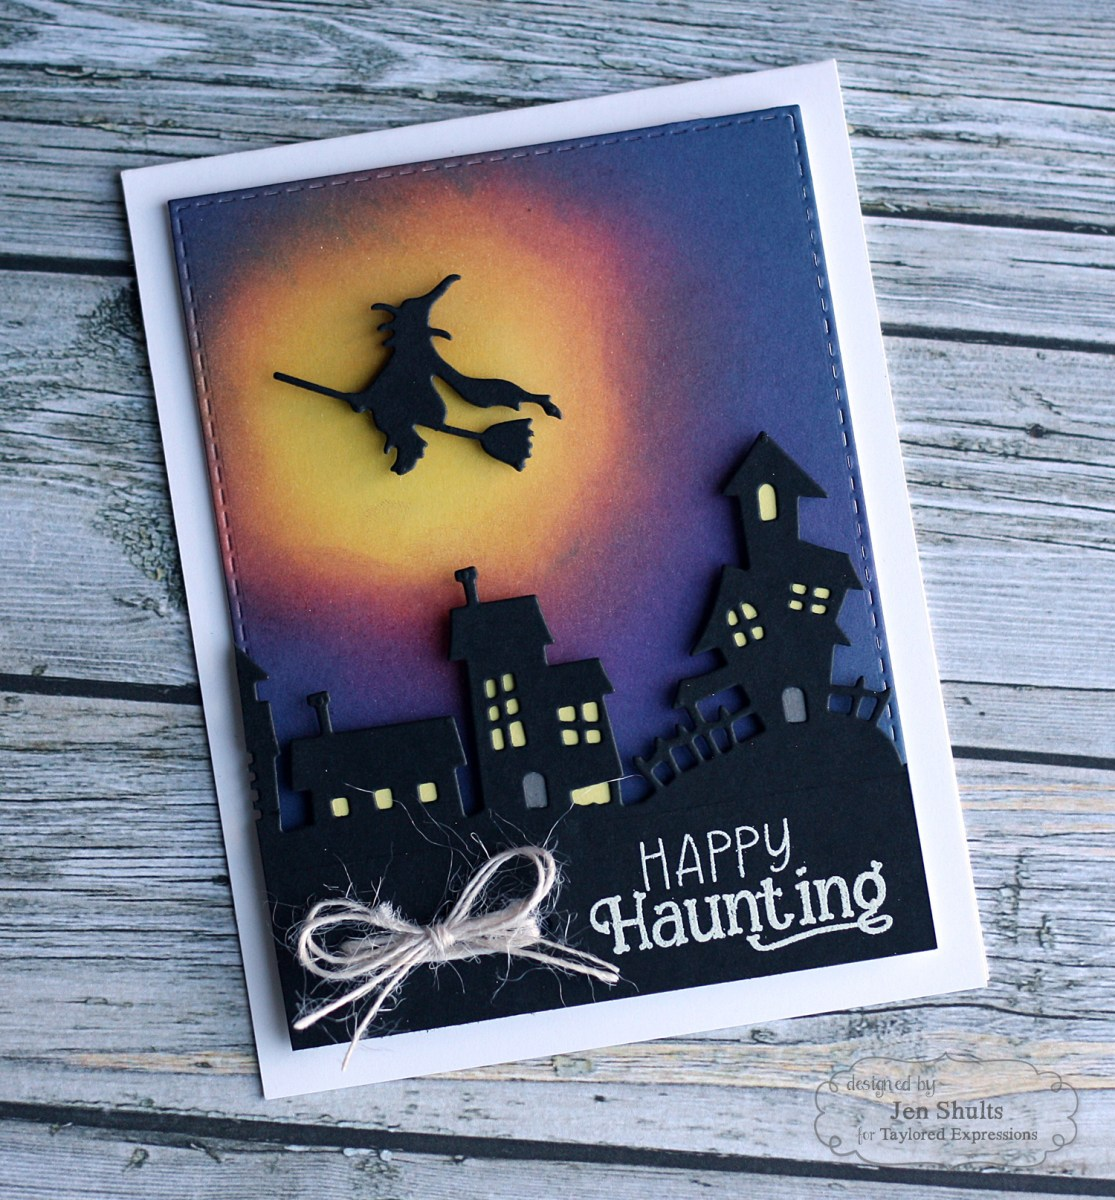 TE August Sneak Peeks: Happy Haunting!